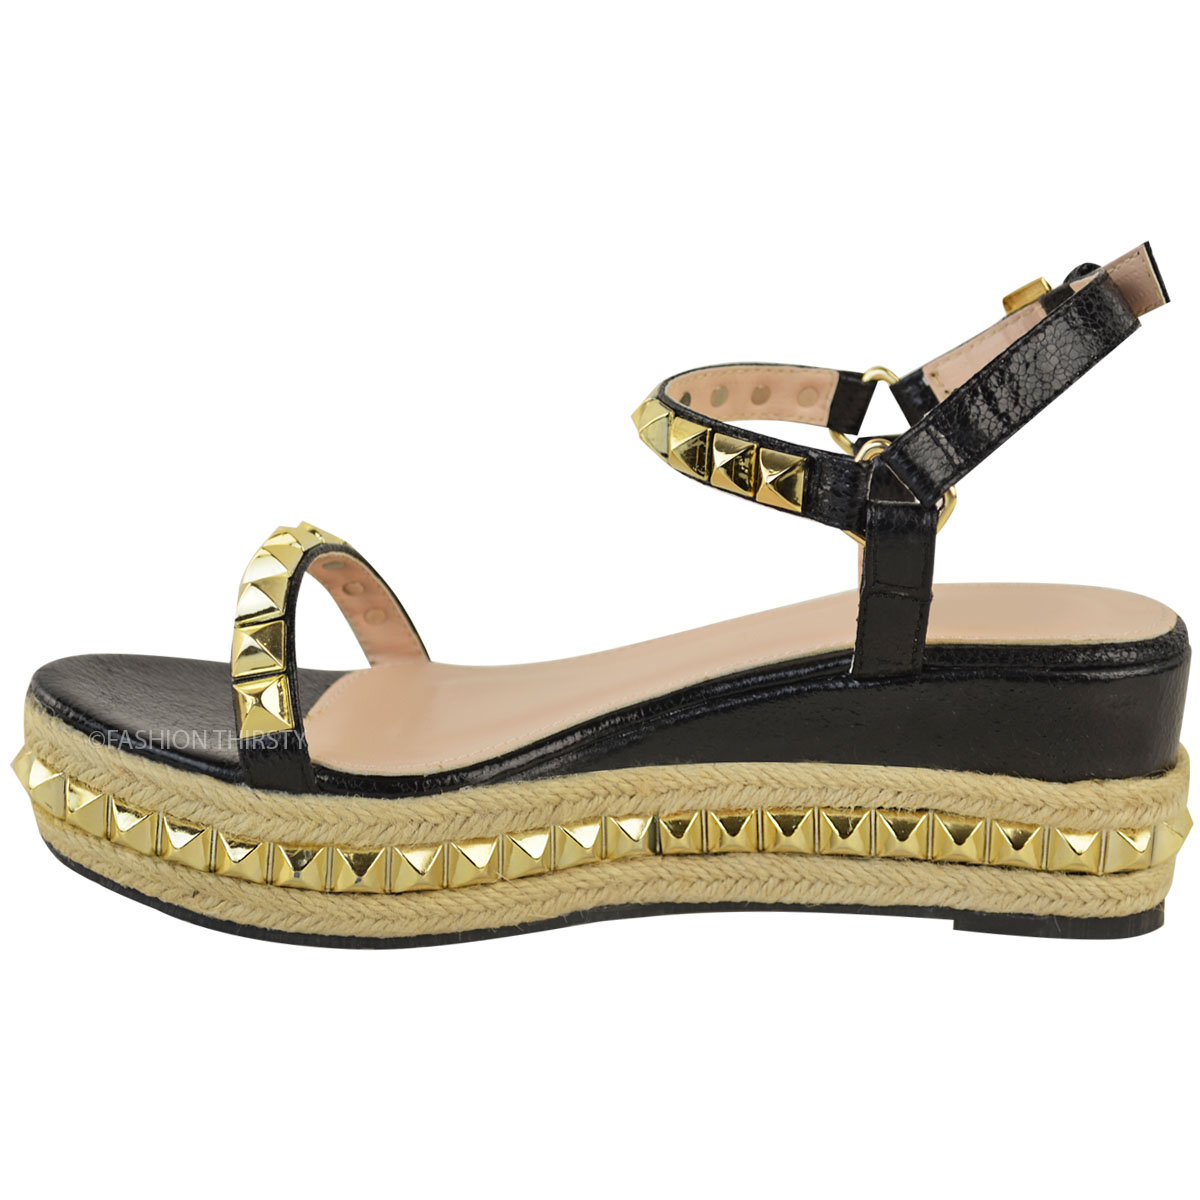 Ladies-Womens-Studded-Low-Wedge-Espadrille-Sandals-Platform-Rose-Gold-Shoes-Size thumbnail 15